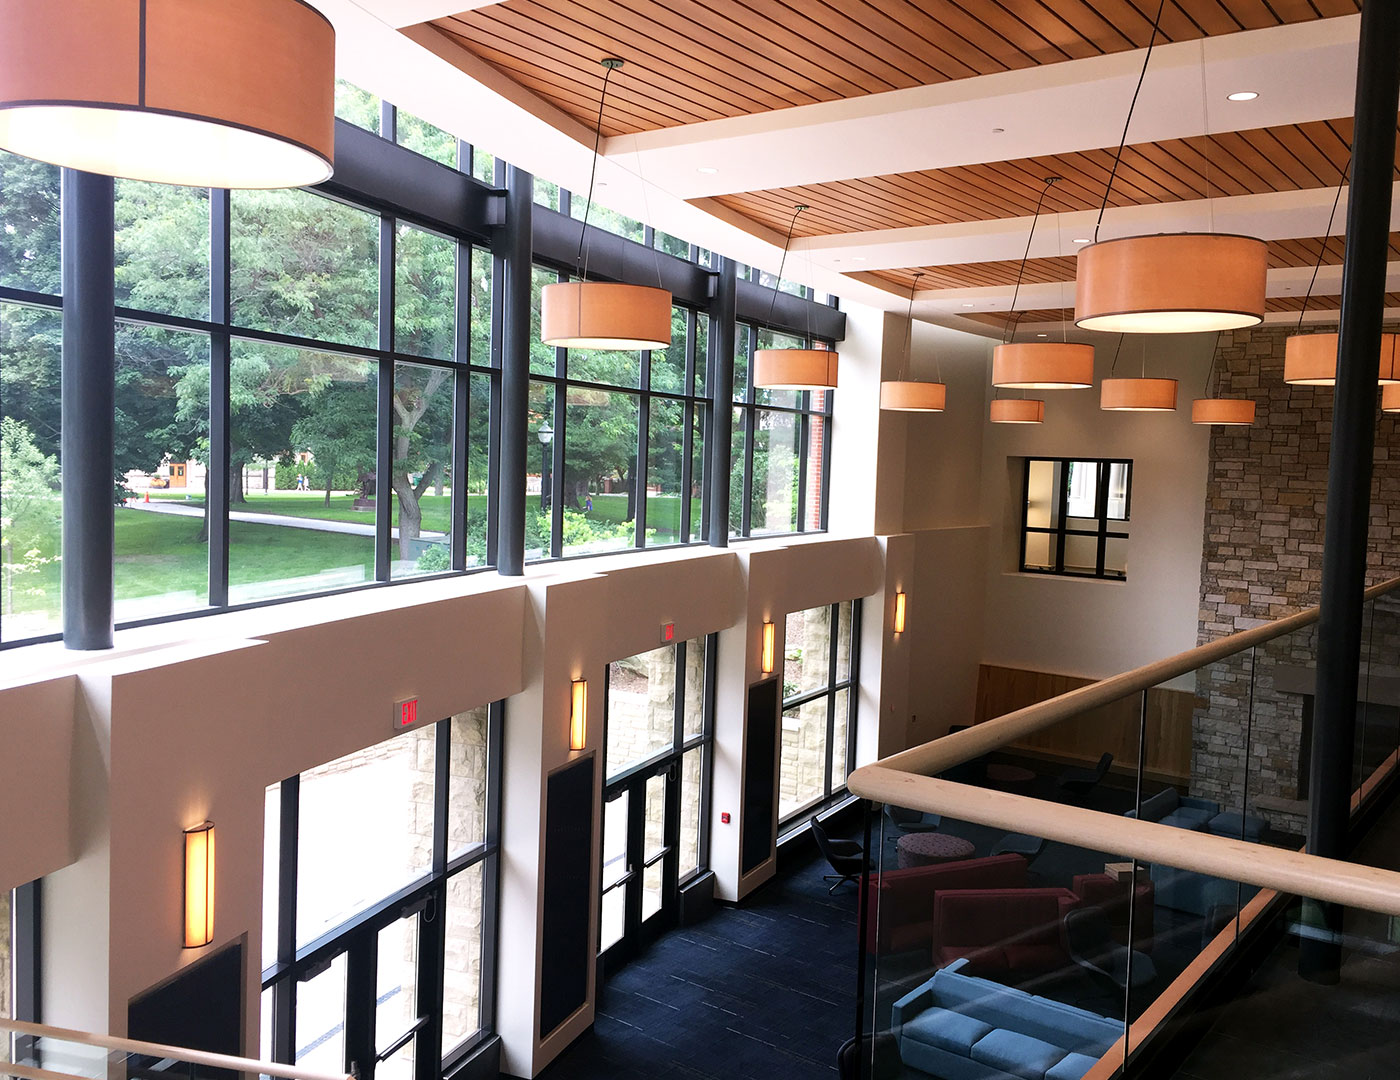 College Student Center - Glass Railing